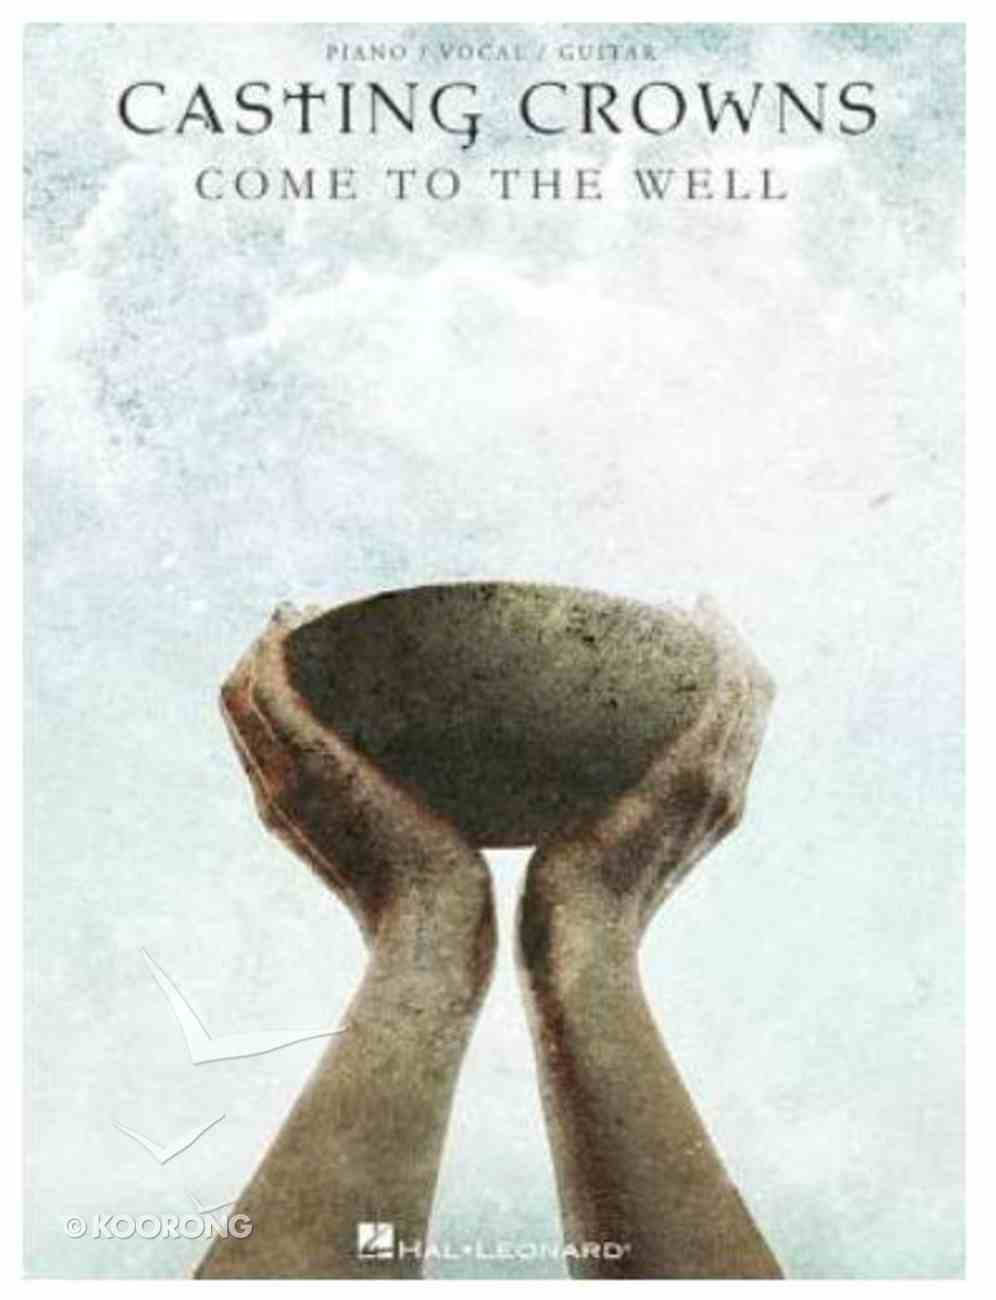 Casting Crowns: Come to the Well (Music Book) Paperback